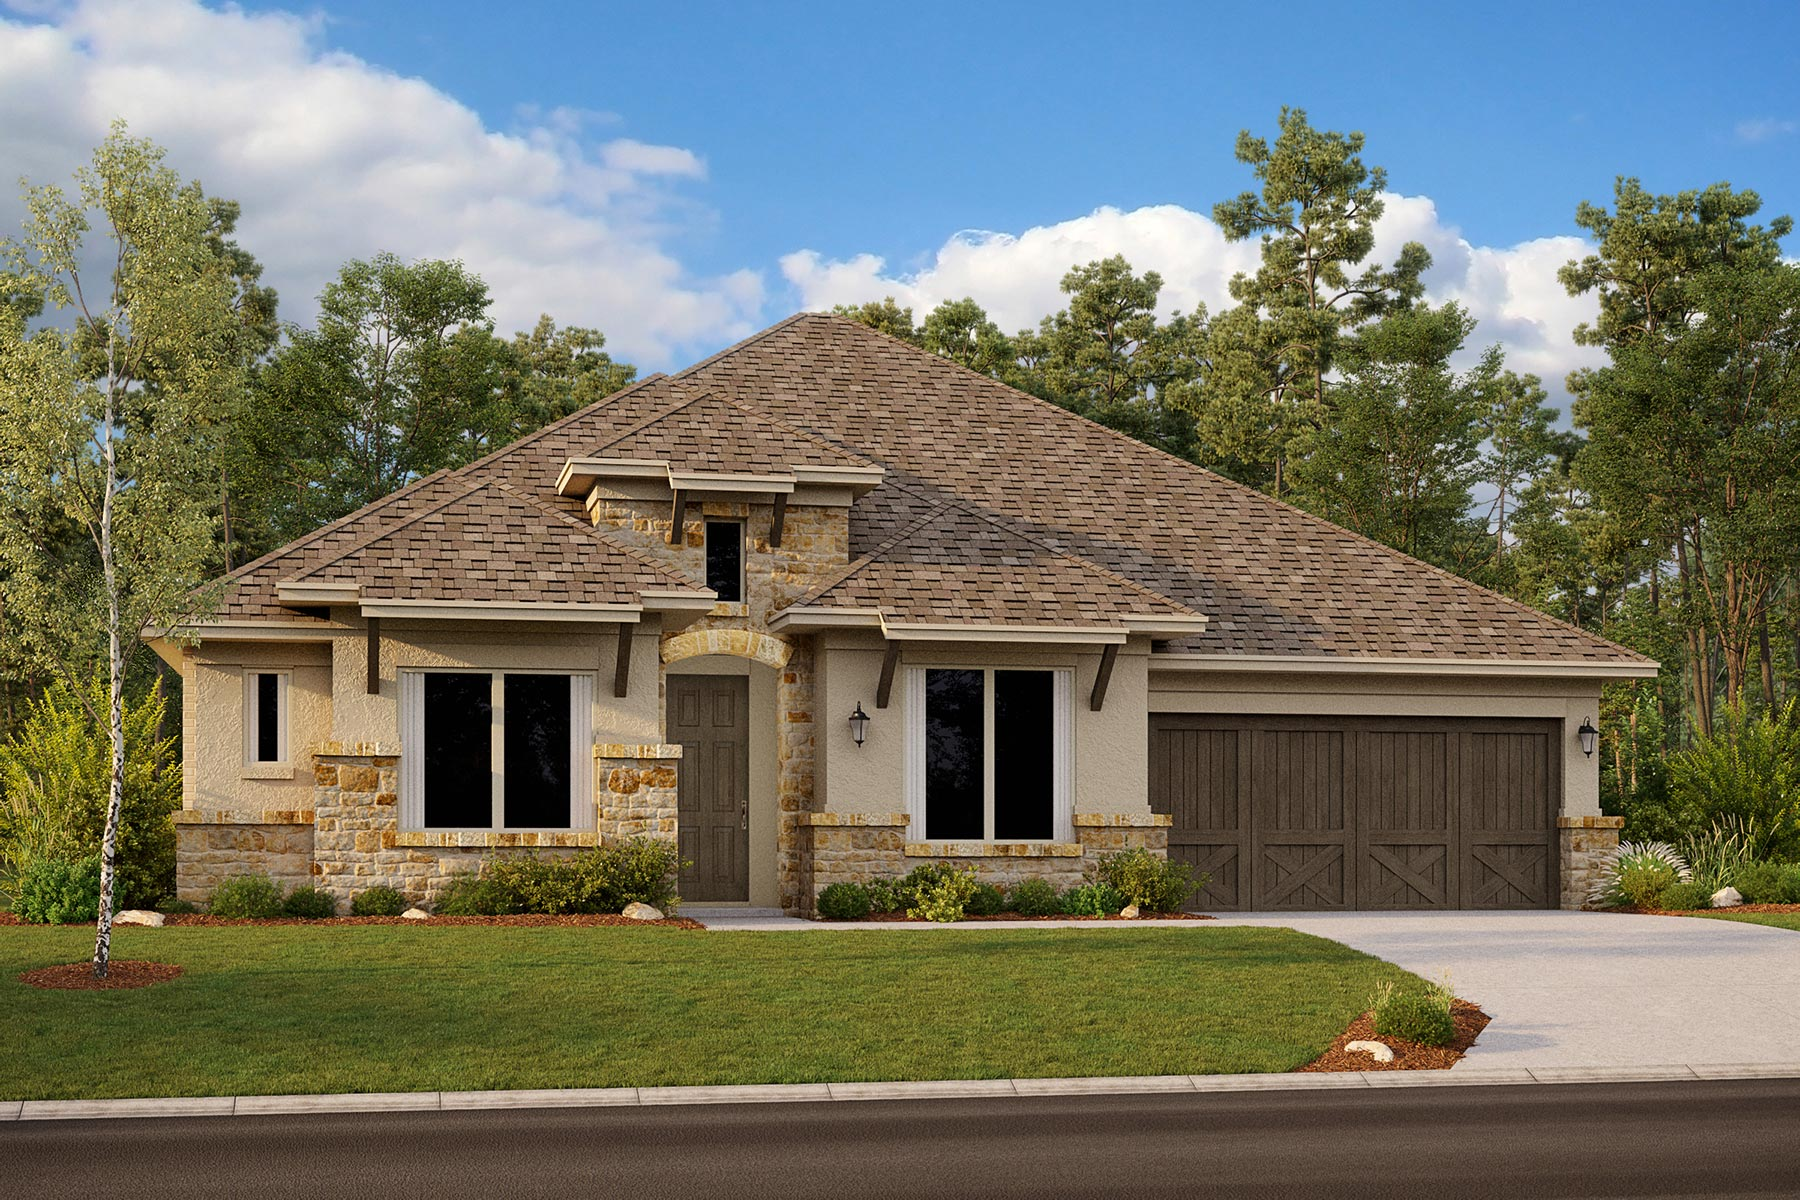 Avery II Plan DAL_Avery_ElevationF_1800x1200 at Villages of Hurricane Creek in Anna Texas by Mattamy Homes